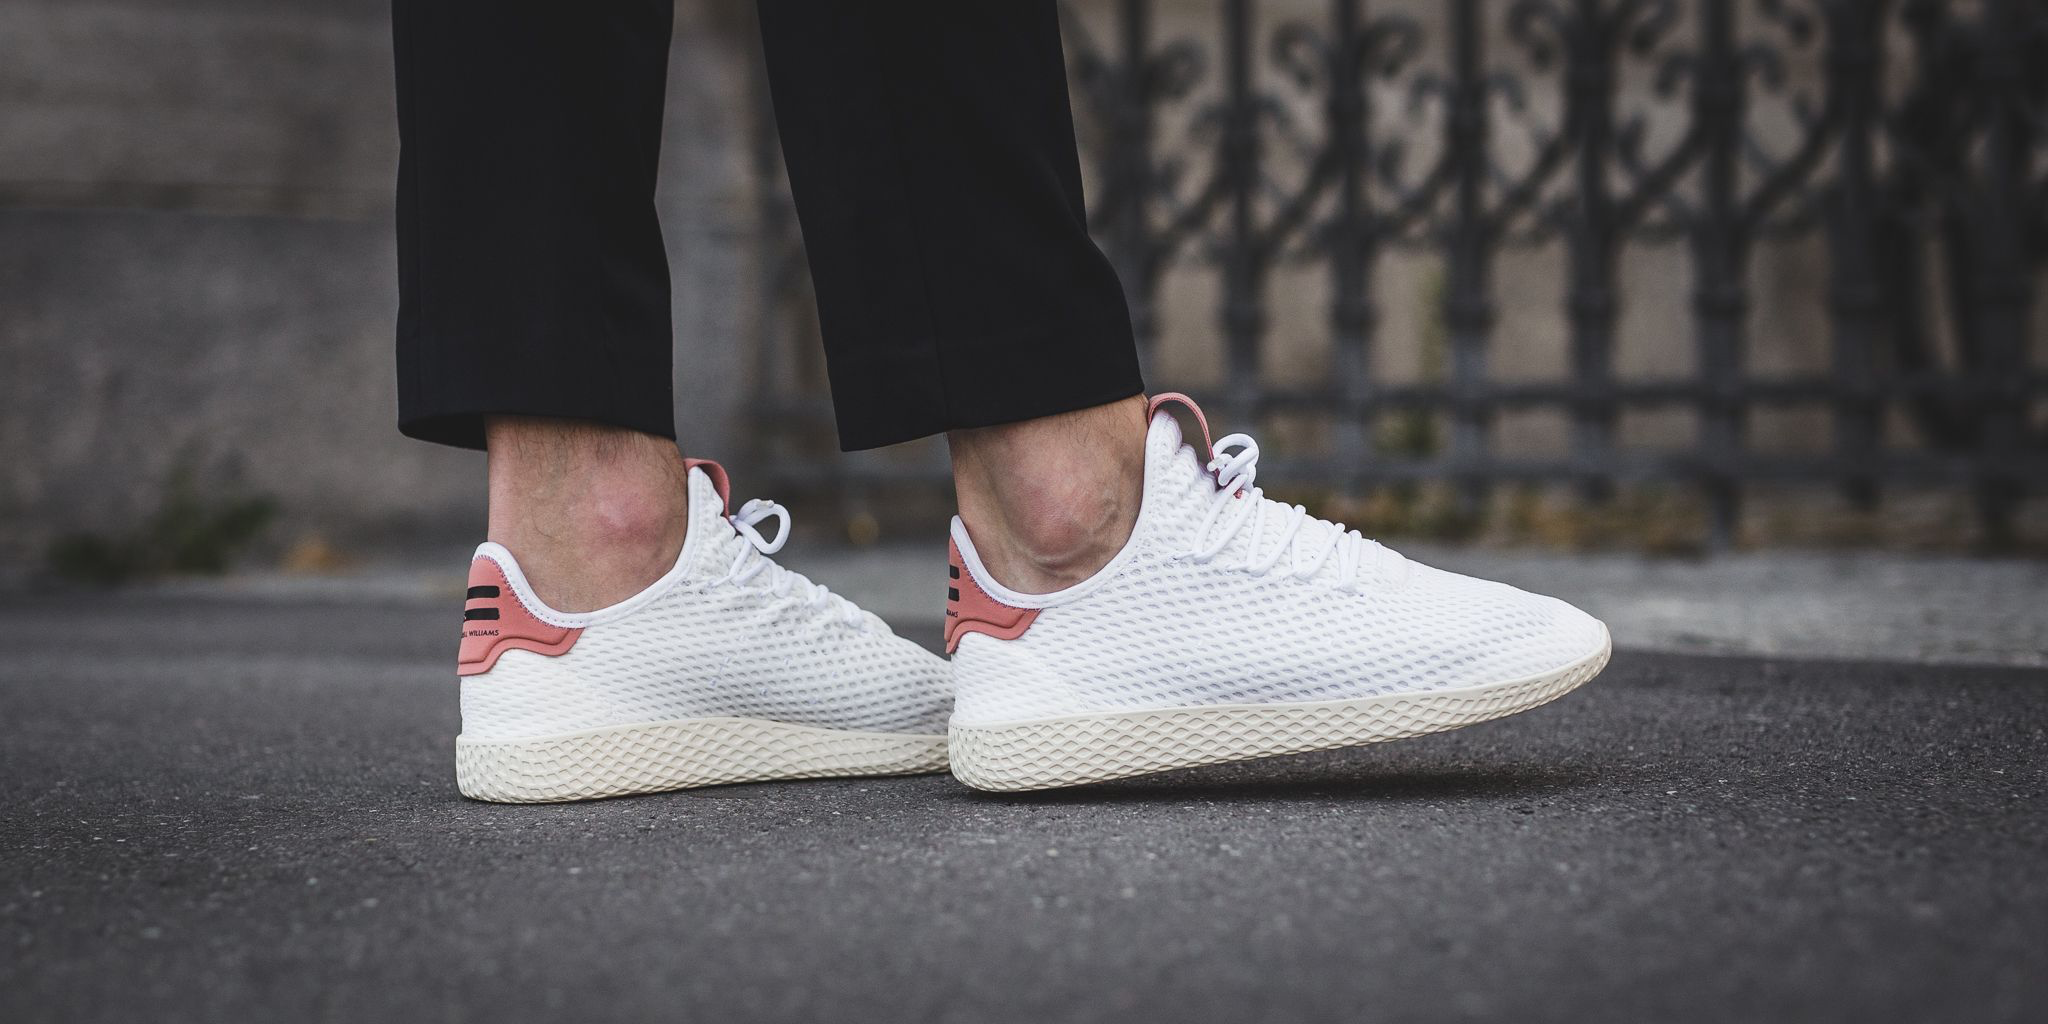 finest selection 7bc38 1d05b ONLINE NOW 🔺Pharrell Williams X Adidas Tennis Hu - White/Raw Pink SHOP  HERE ➡ bit.ly/2wvam0o #adidas #pw #pharrell